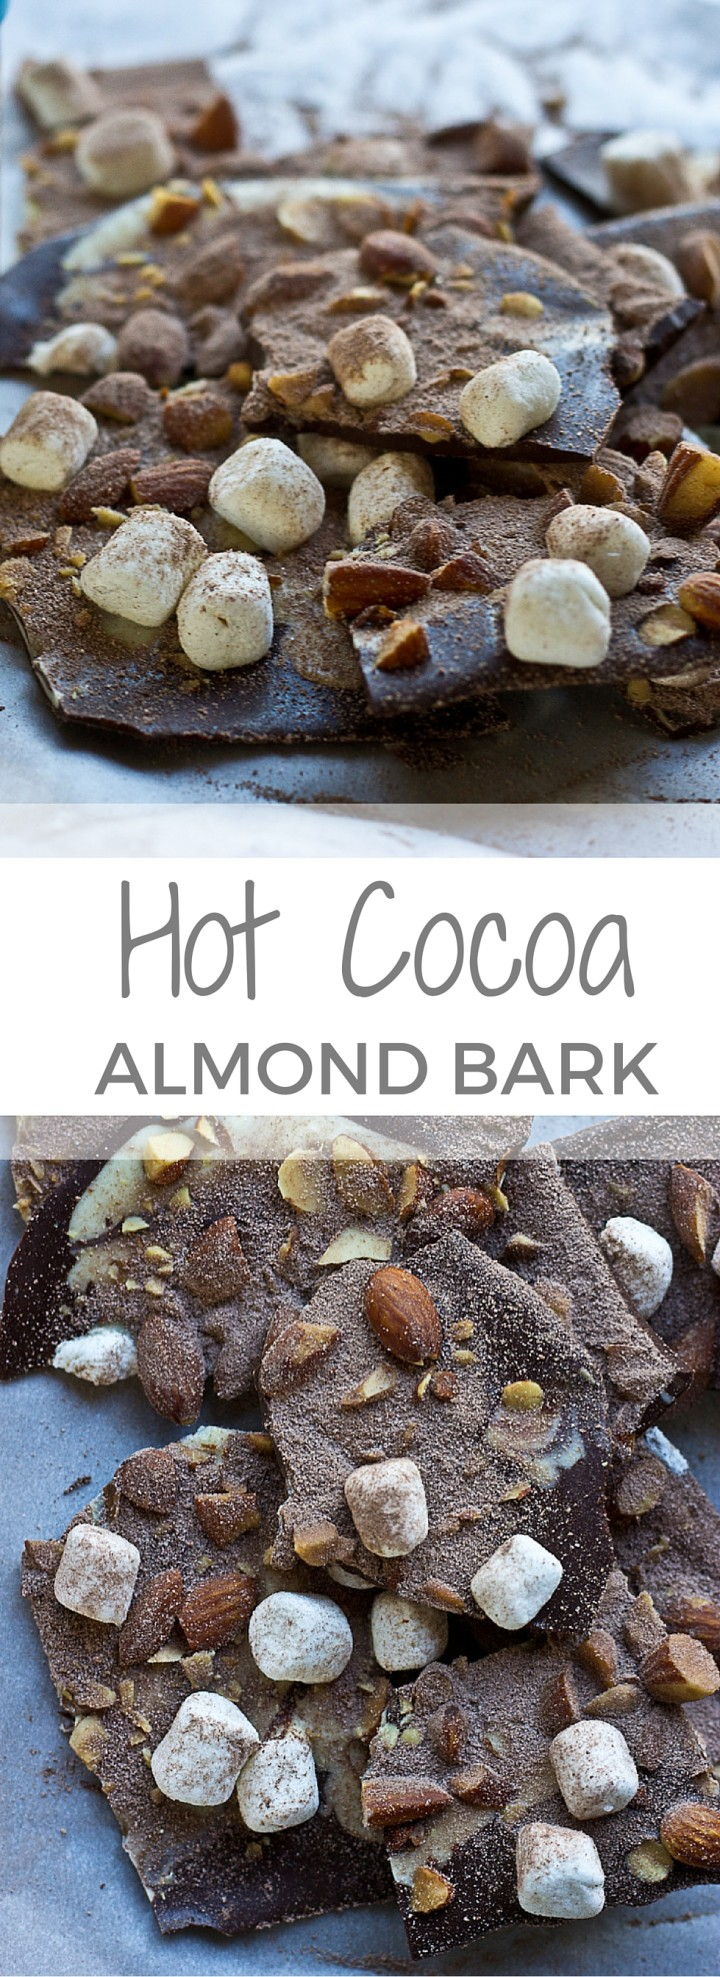 Hot Cocoa Almond Bark… dark chocolate with white chocolate swirl, marshmallows, almonds, and a dusting of hot cocoa…. a super easy recipe to throw together for a holiday party and it's oh so festive! @KrisitnaLaRueRD